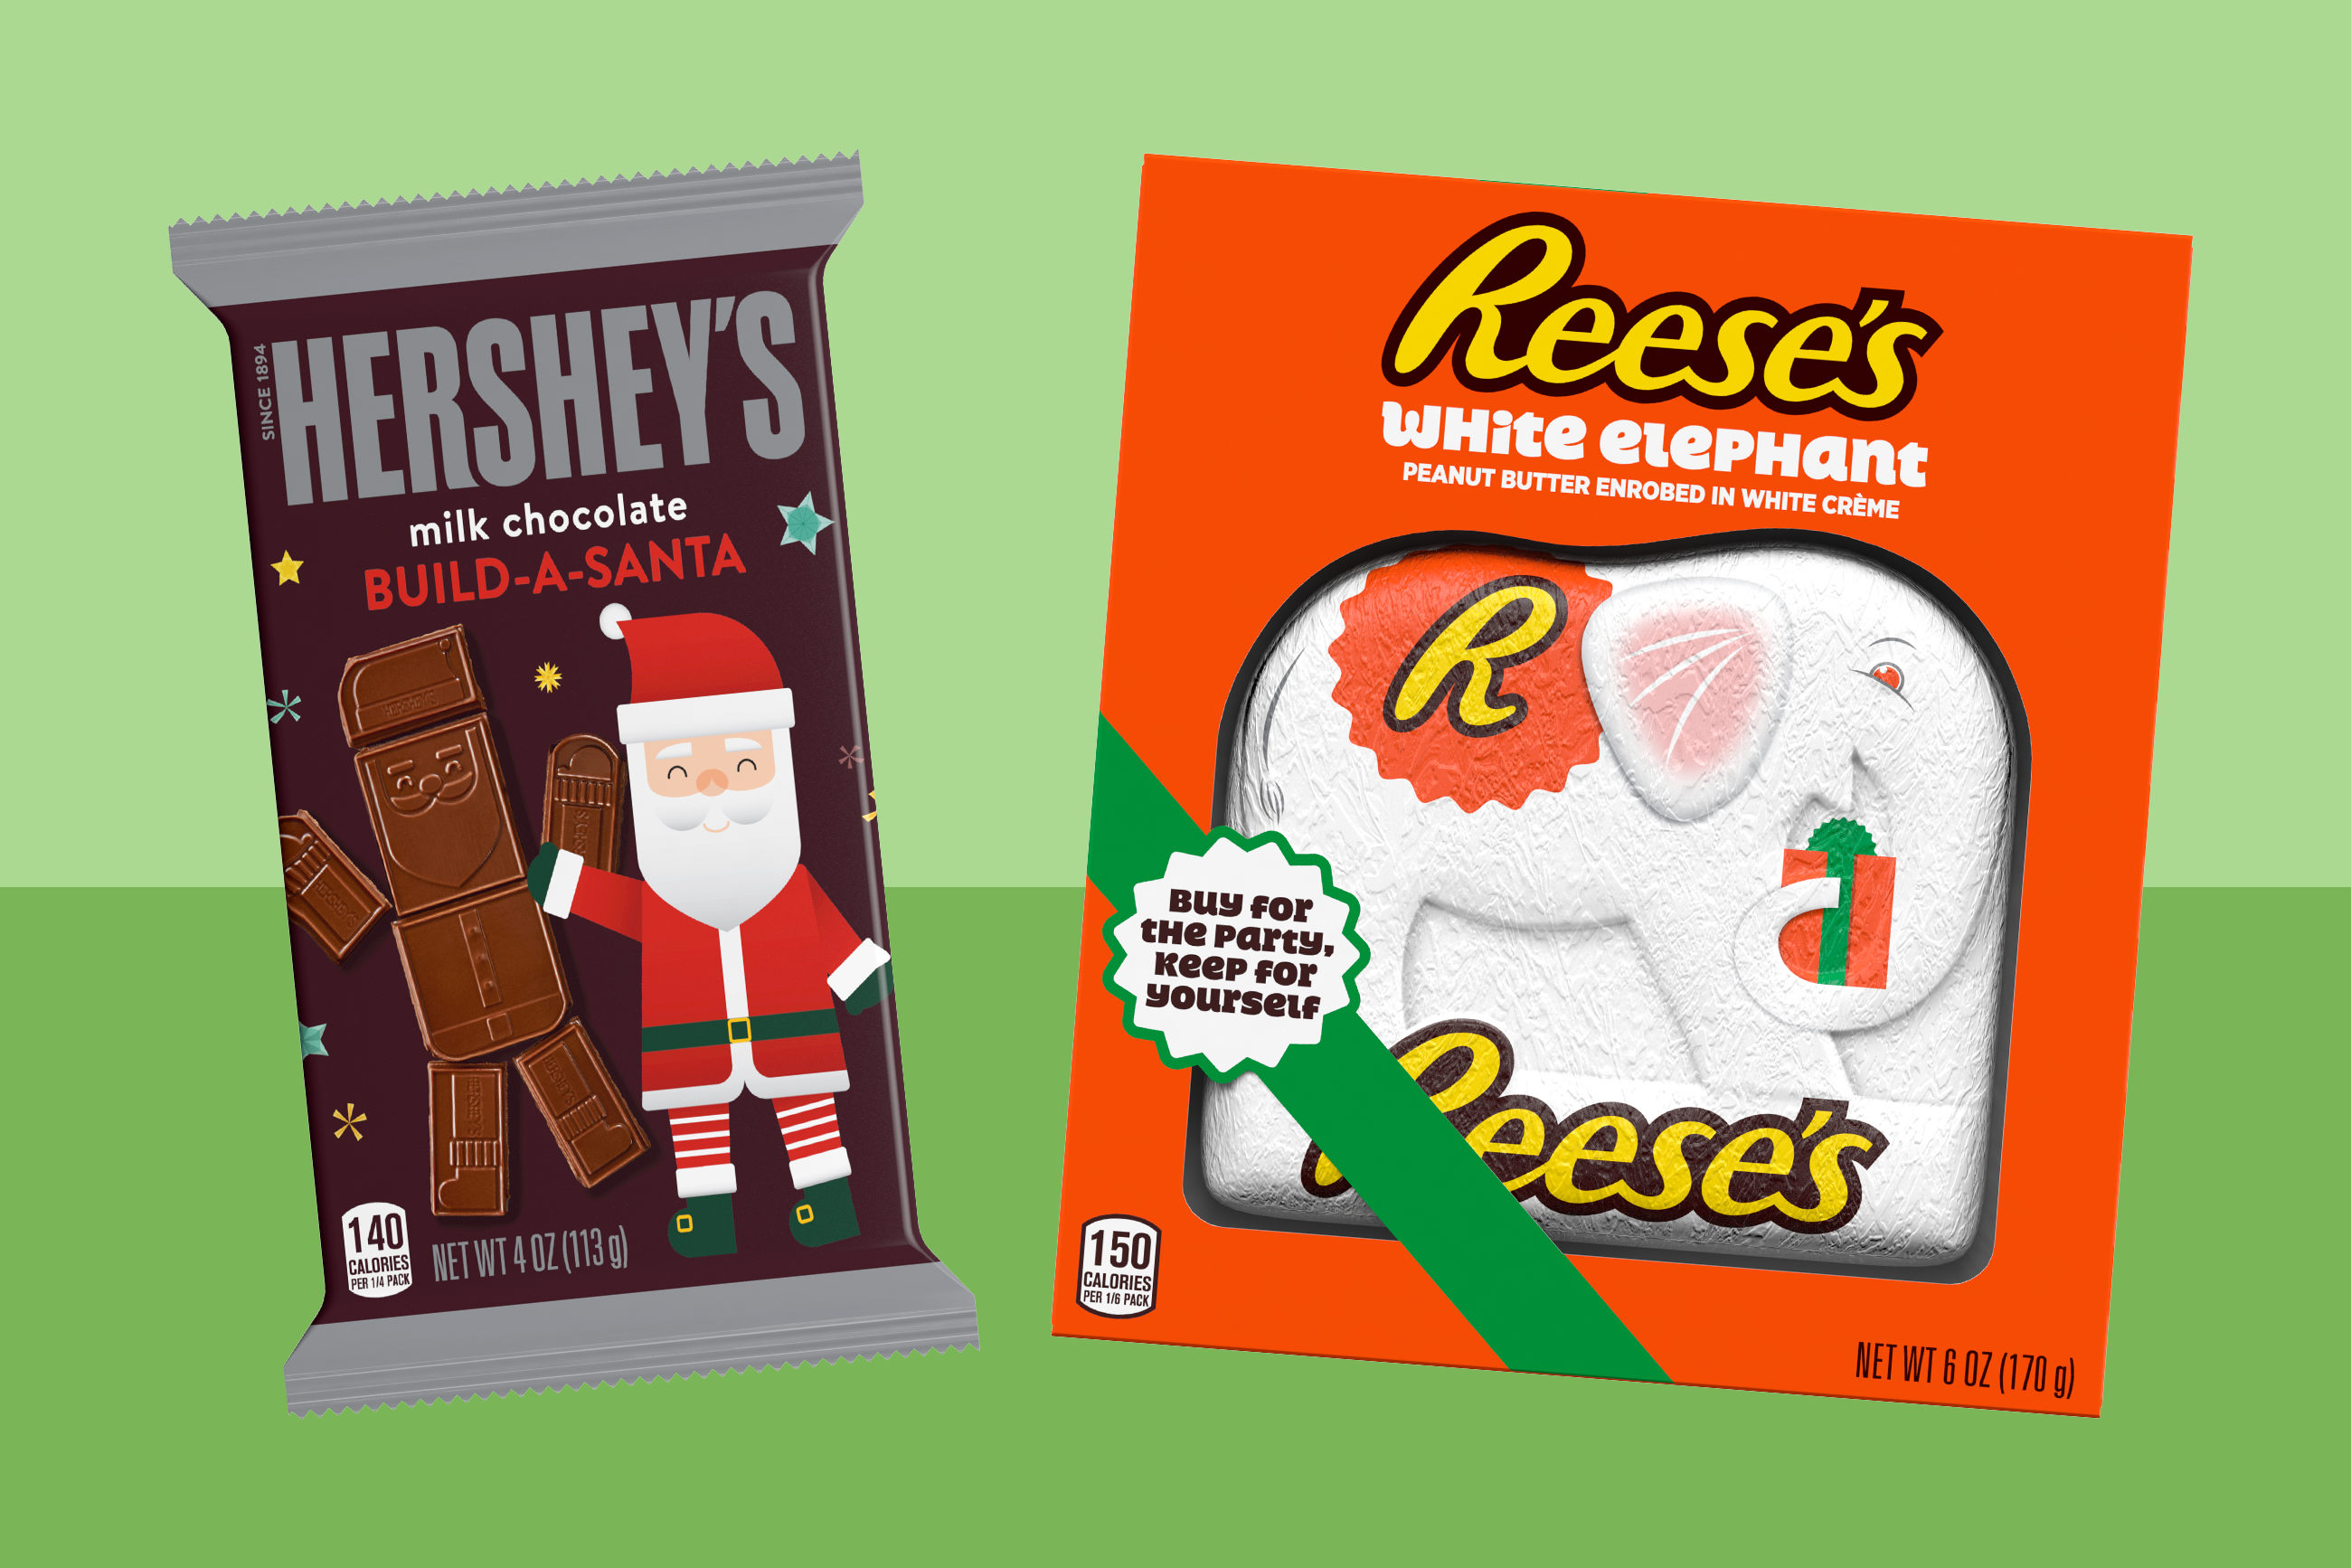 Hershey's Milk Chocolate Build-a-Santa and Reese's White Elephant on a two-tone green background